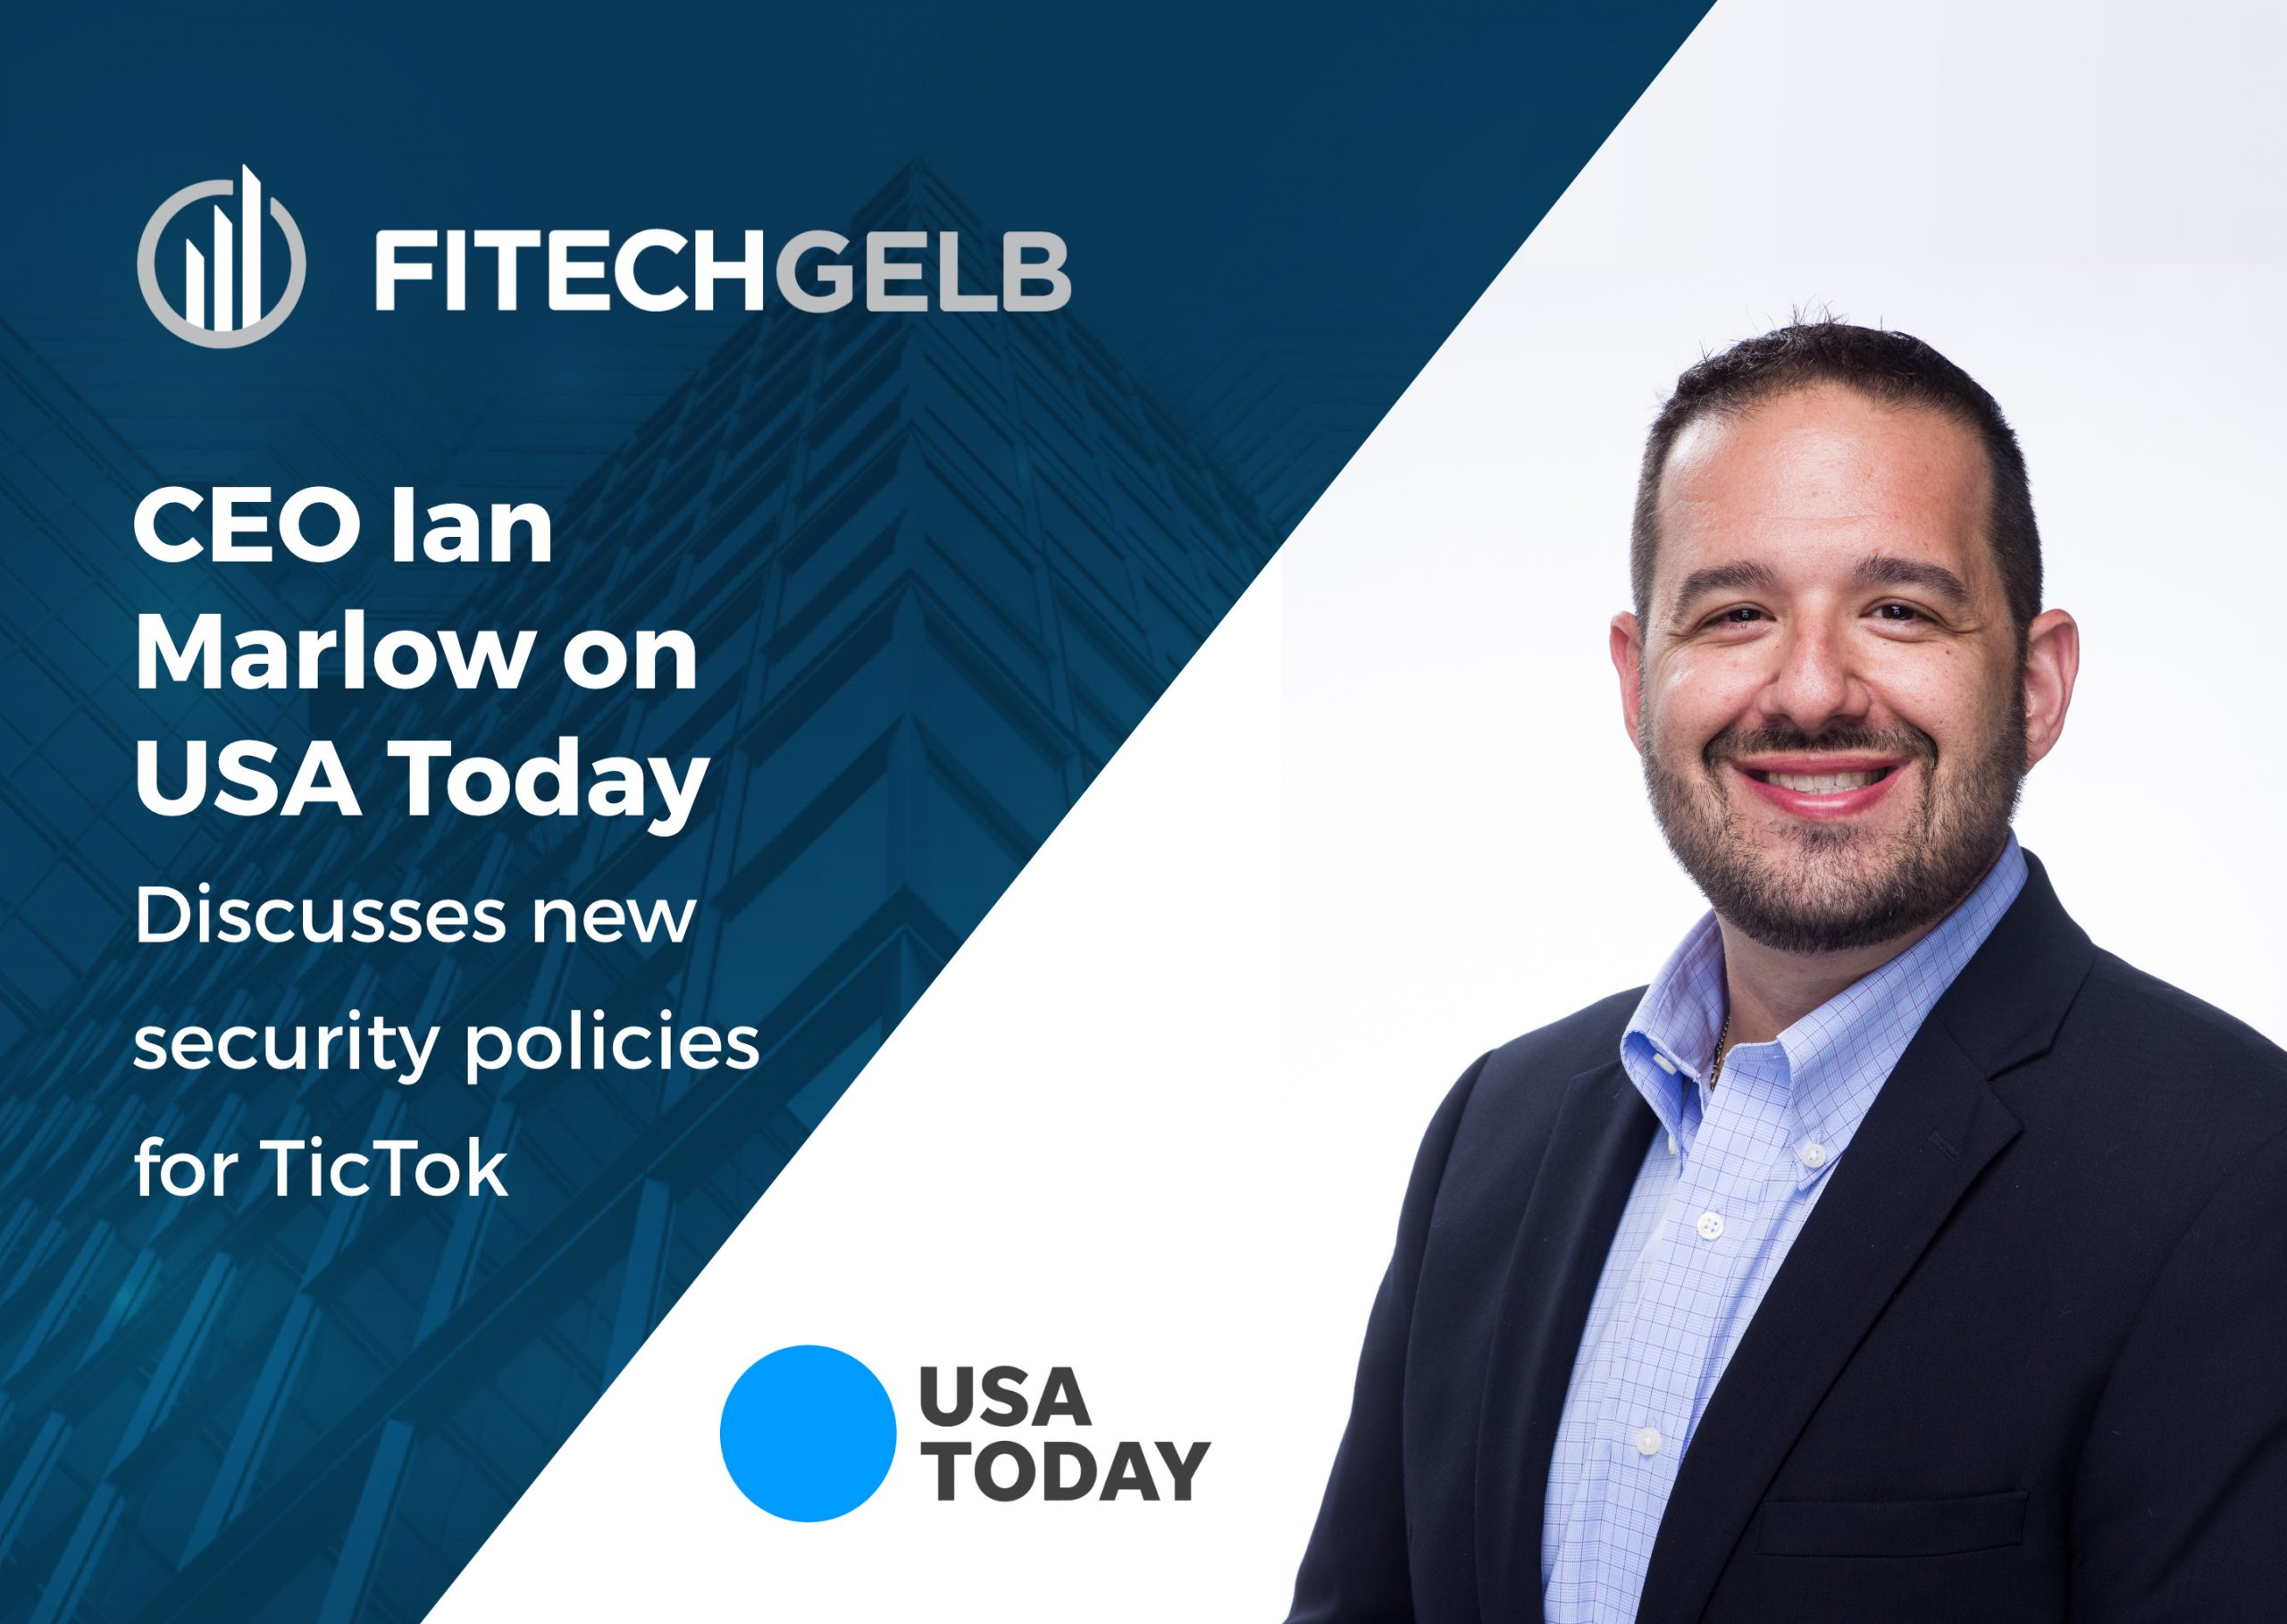 CEO Ian Marlow discusses new security policies for TikTok on USA Today